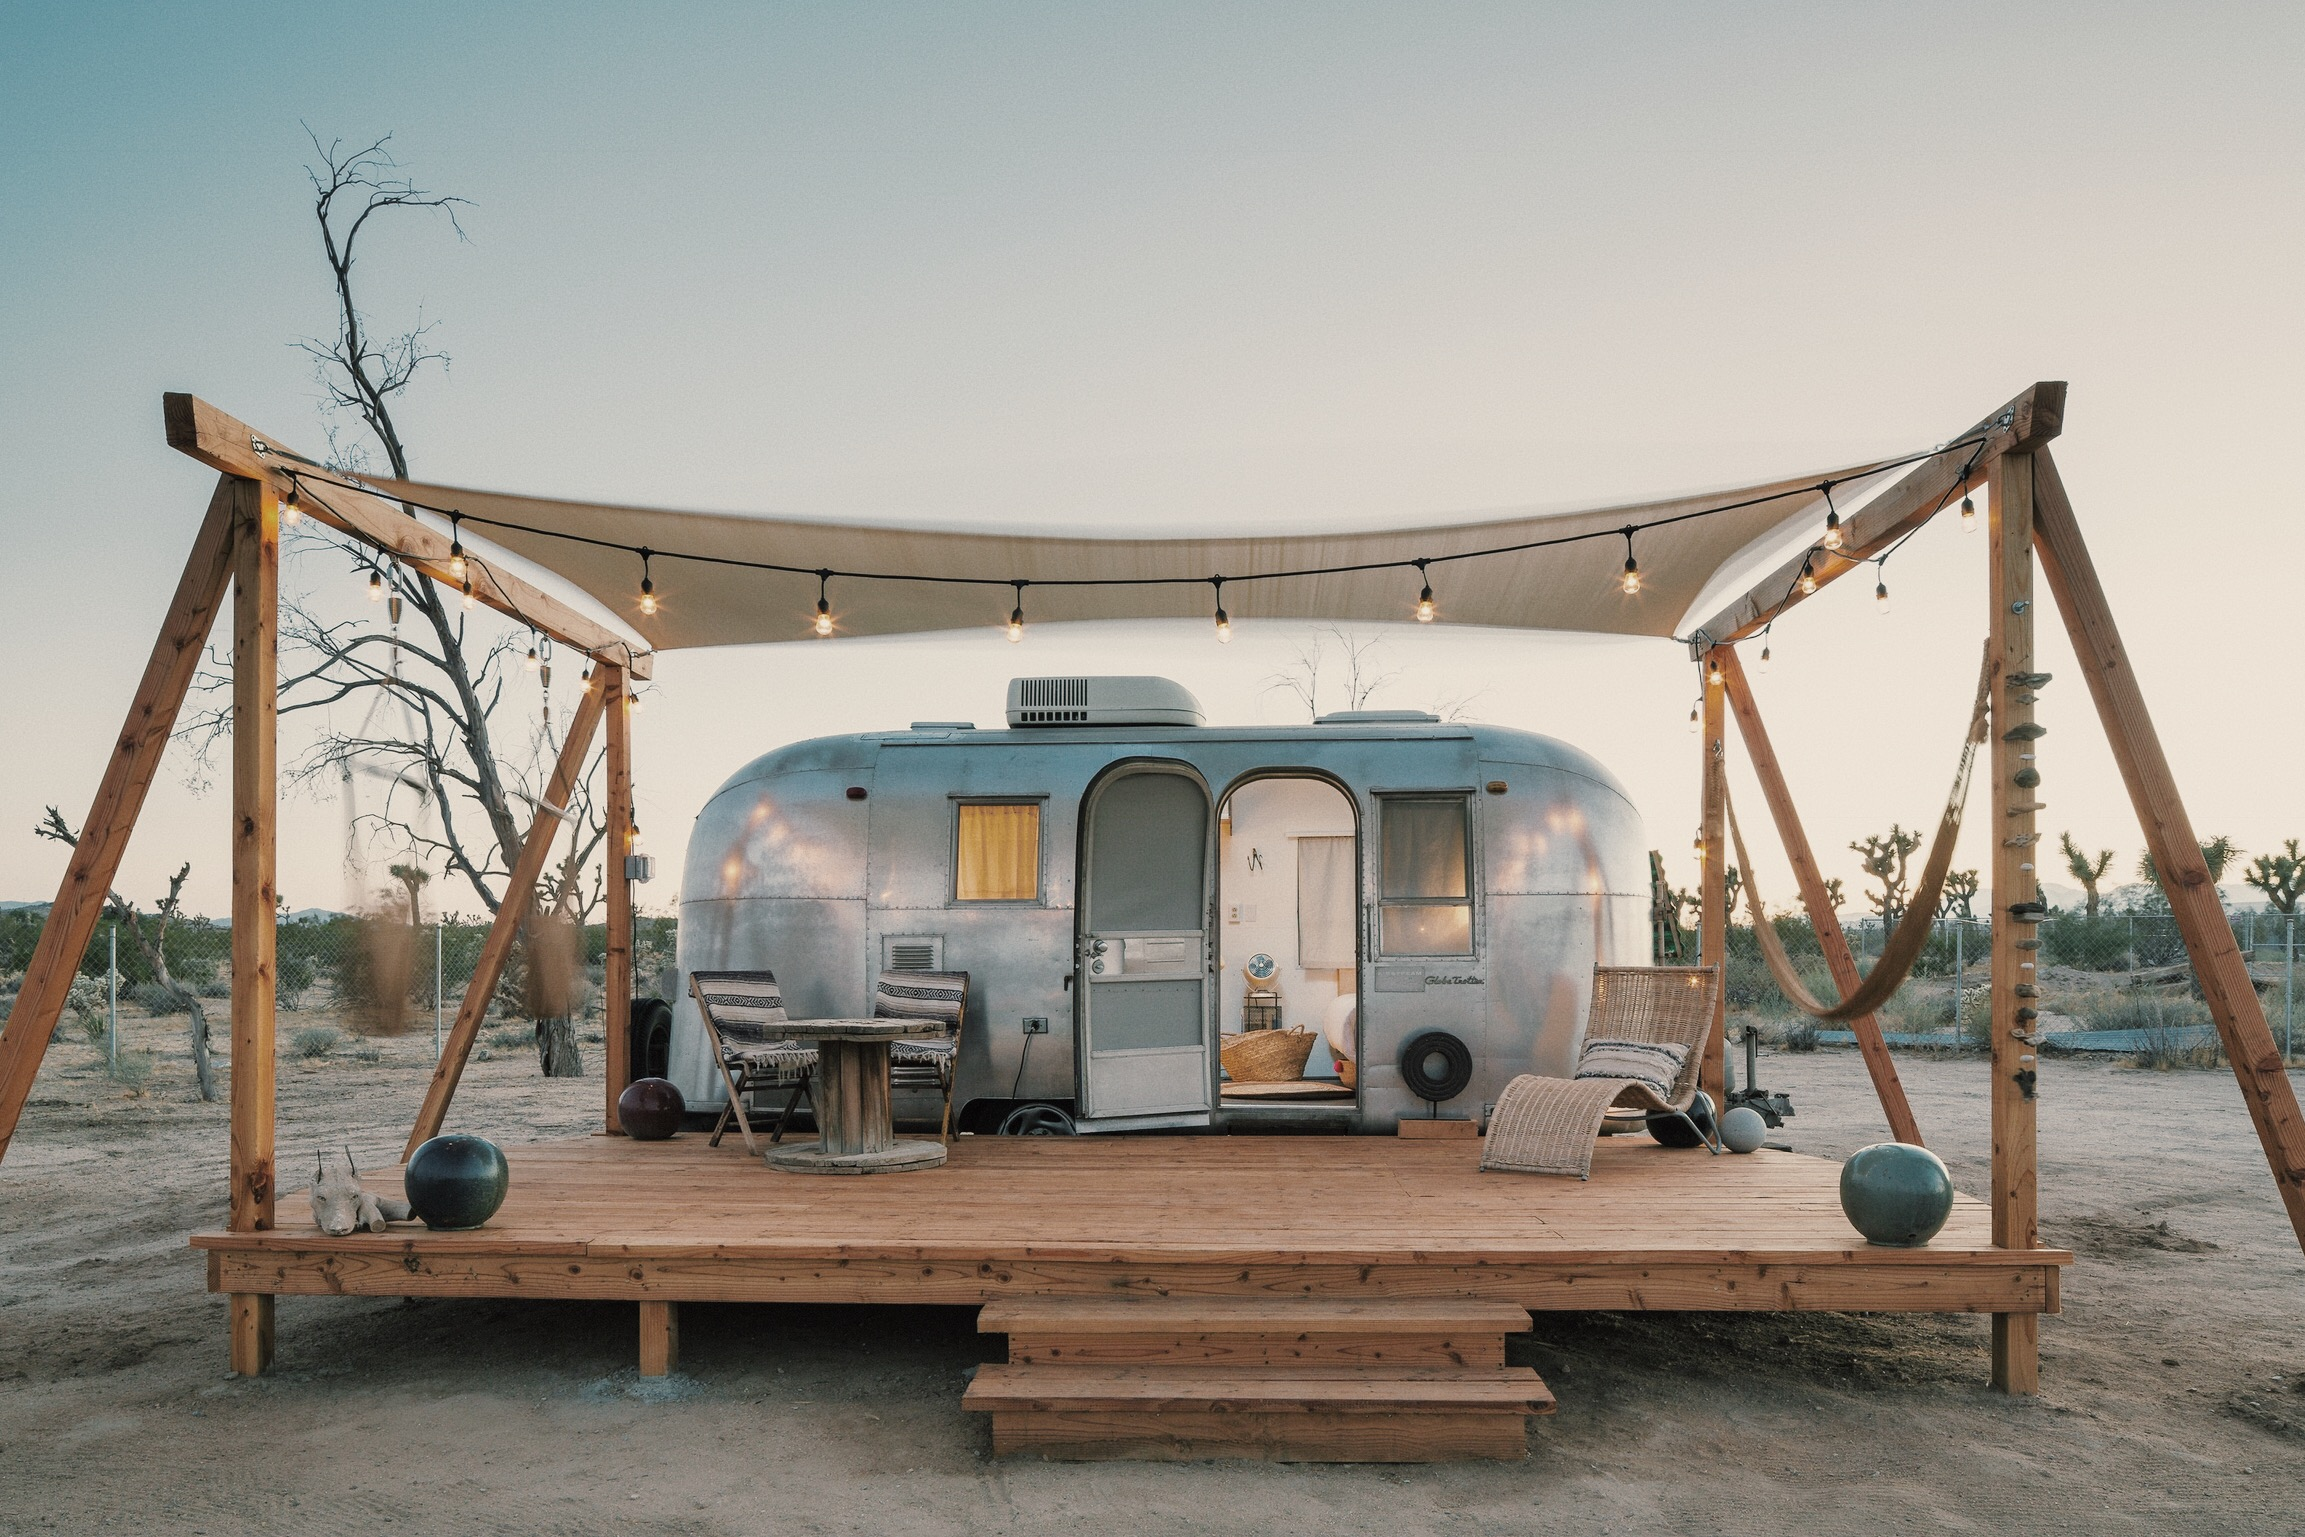 Merchant on the road1966 - Merchant on the Road airstream has been curated by the mother/daughter duo of Merchant Modern. Their carefully picked mid century modern and moroccan touches will leave your design palette transported.Casper Full - Sleeps 2BOOK HERE